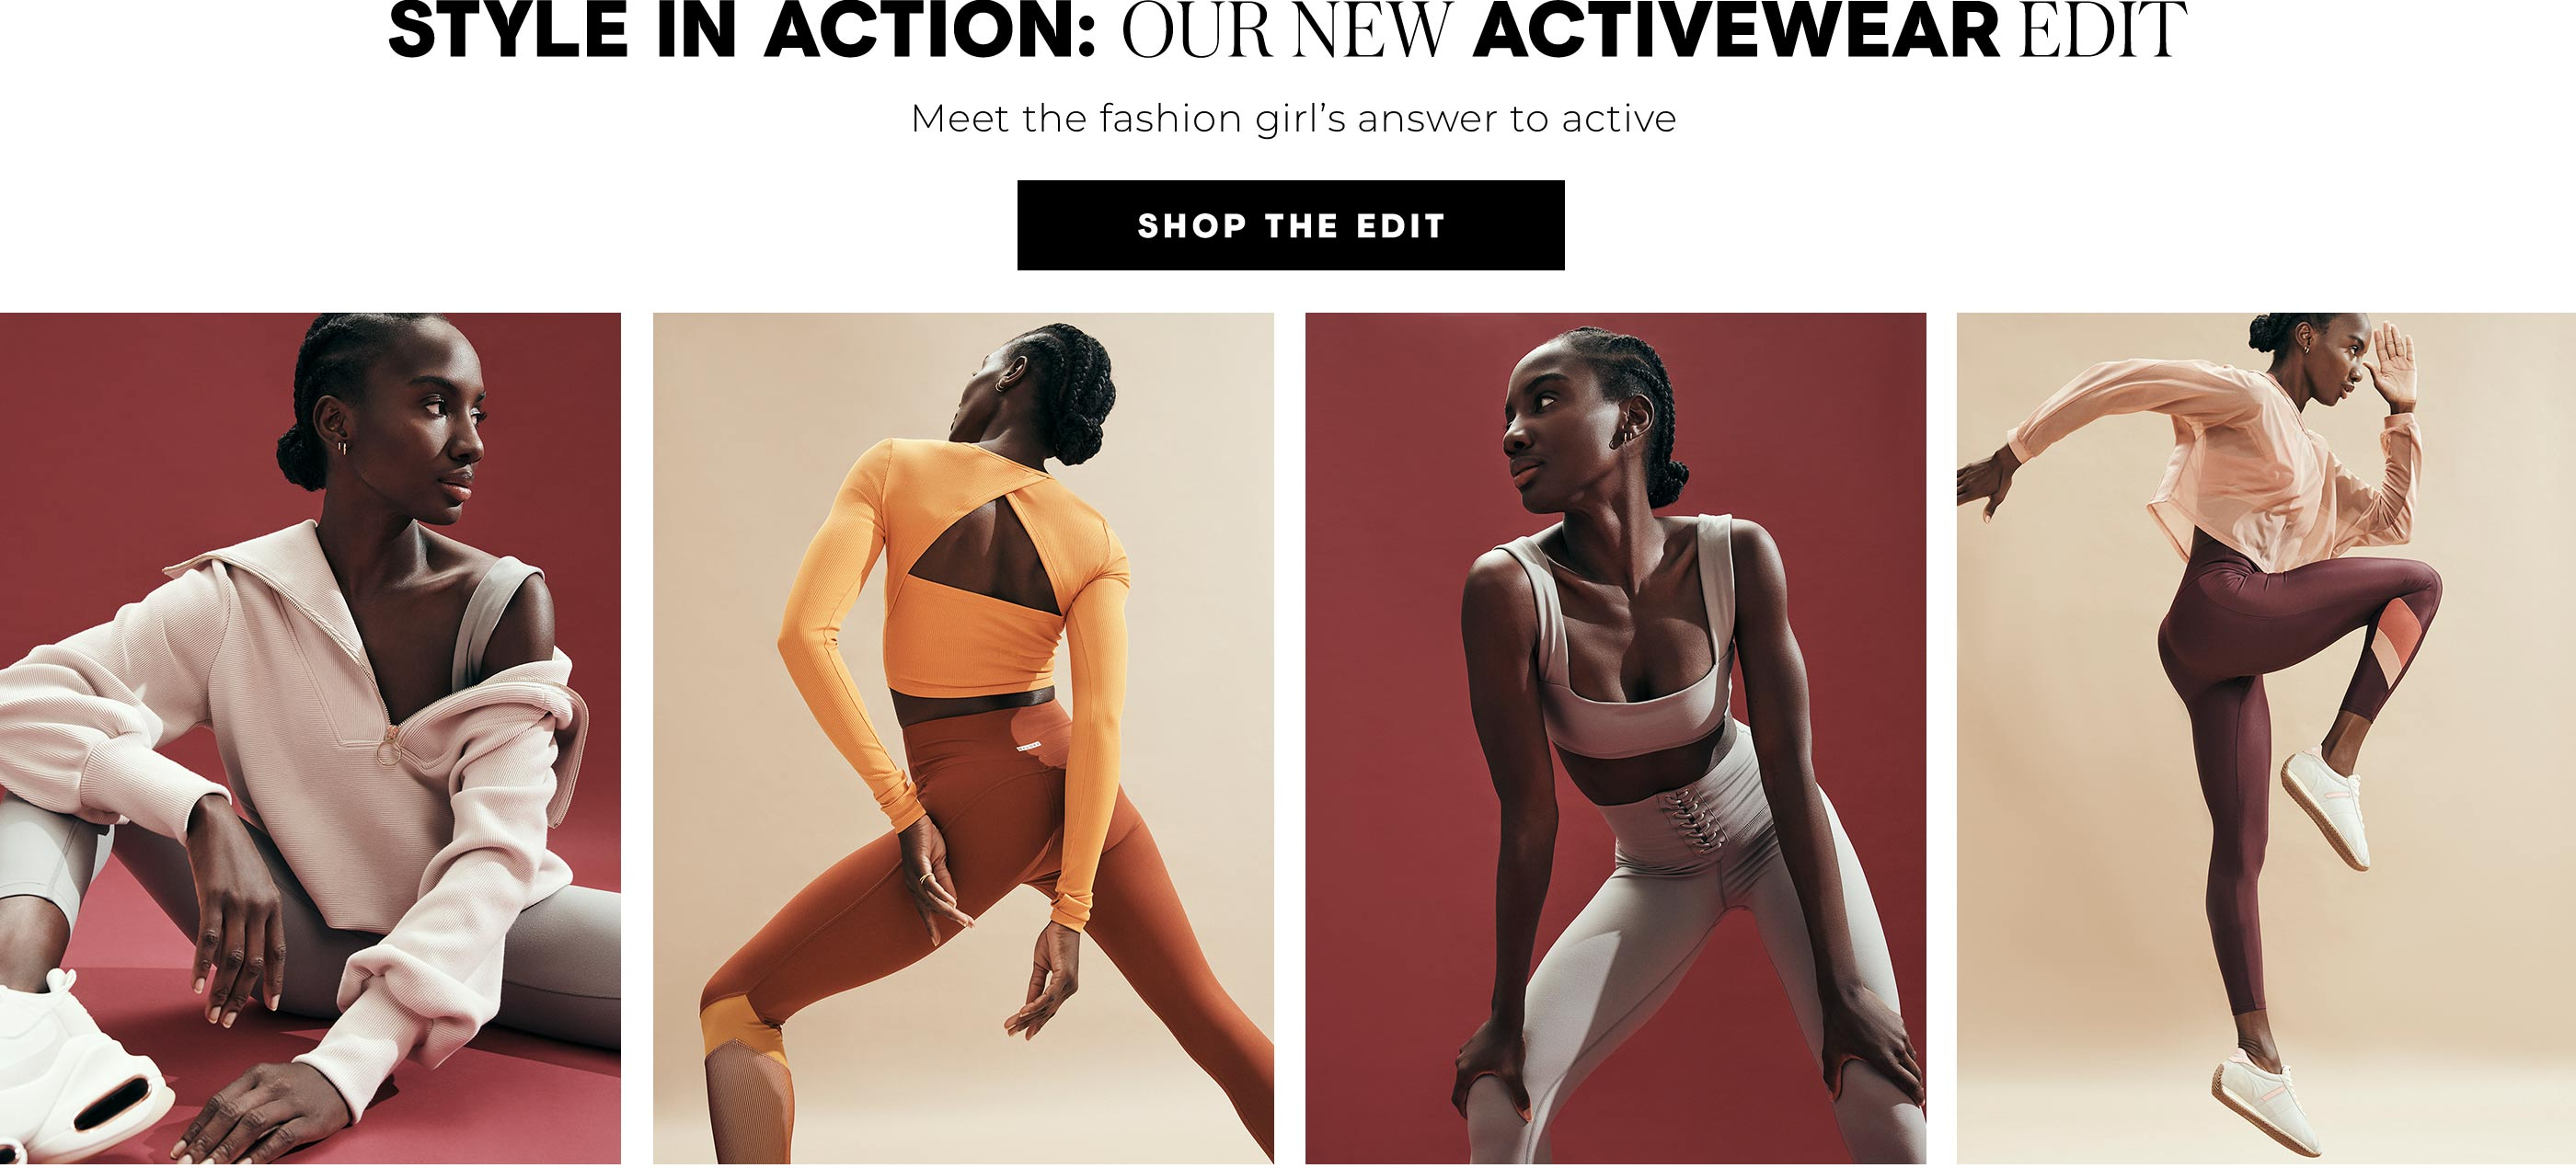 Style In Action: Our New Activewear Edit Meet the fashion girl's answer to active